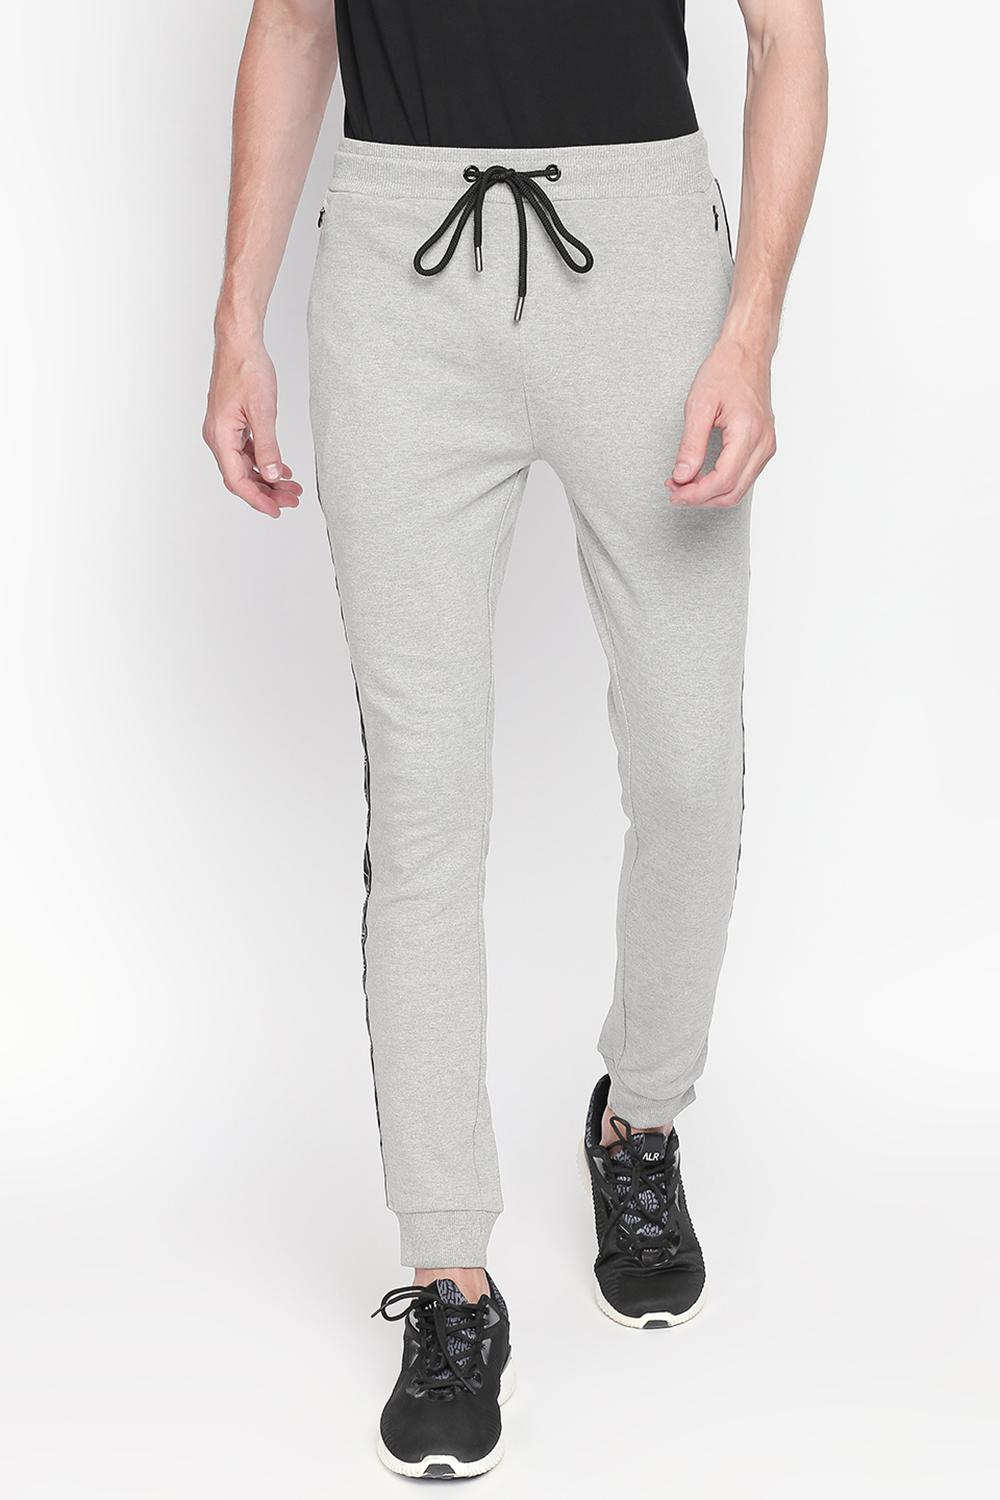 046c2319a9 Buy Men Activewear Online in India - Track Pants, Sports and Gym ...